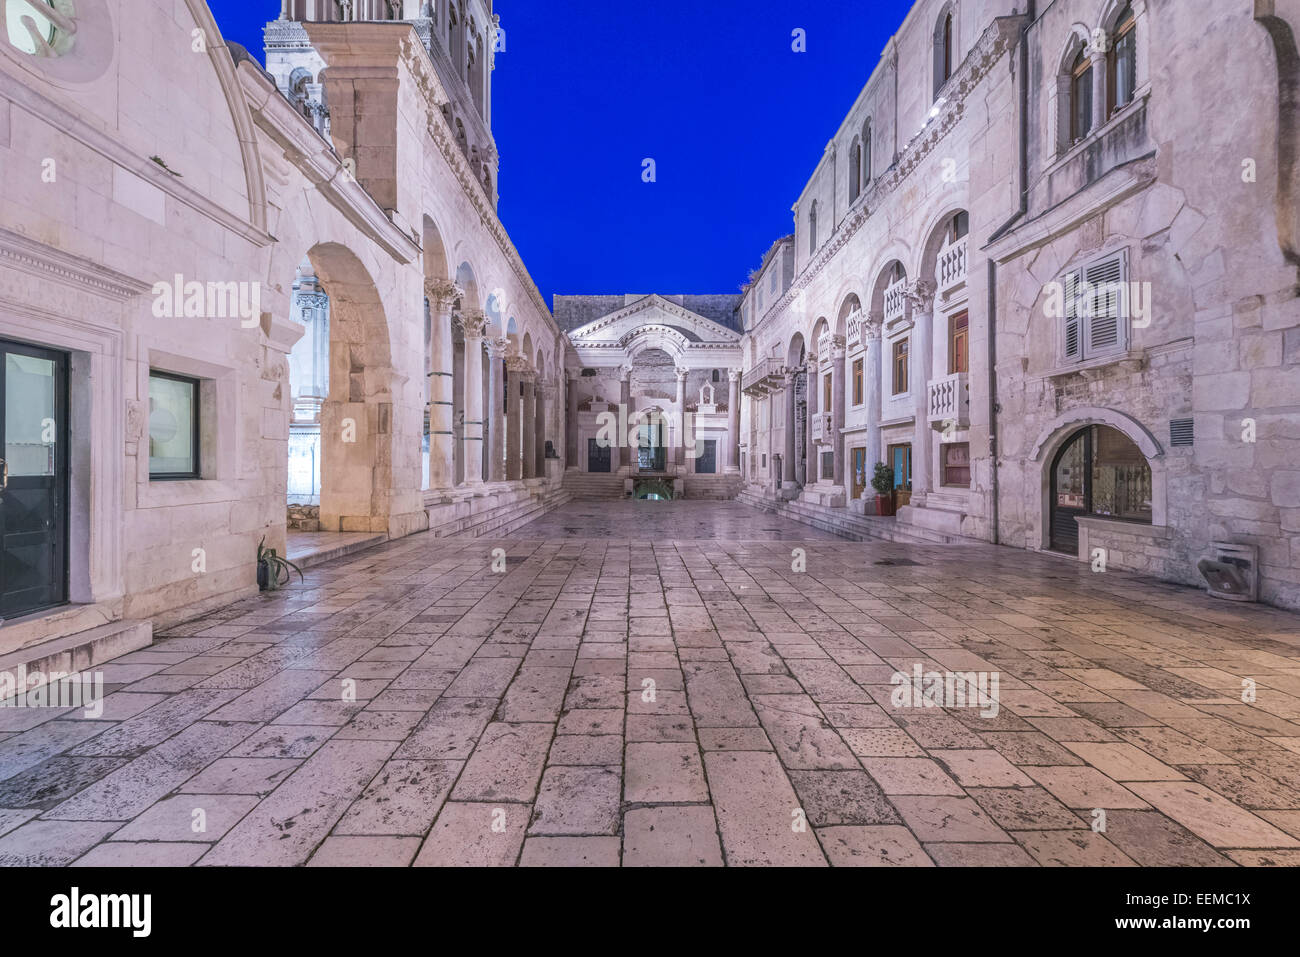 Peoples Square between Diocletian Palace buildings, Split, Split, Croatia - Stock Image